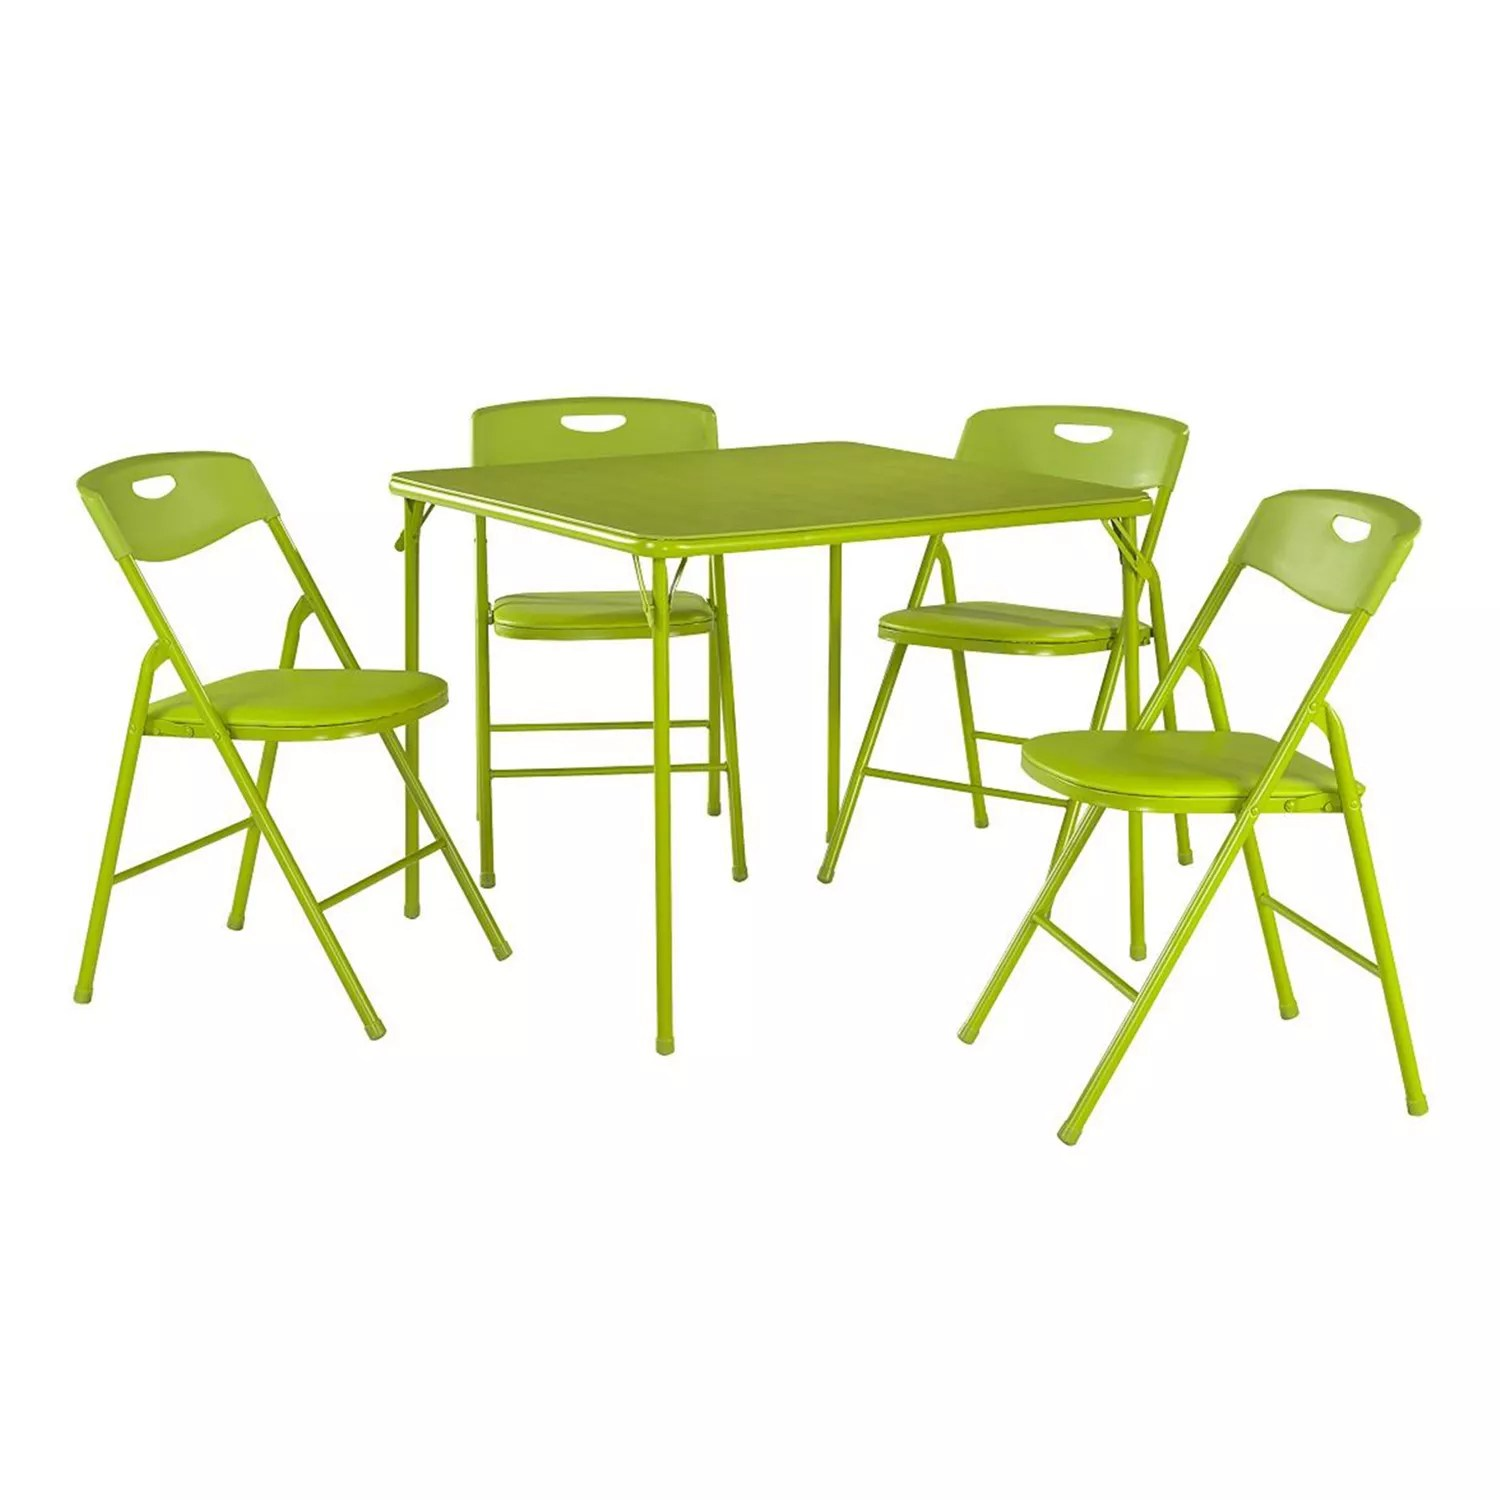 folding chair green lounge cushions cheap cosco table plastic backed 5 piece set